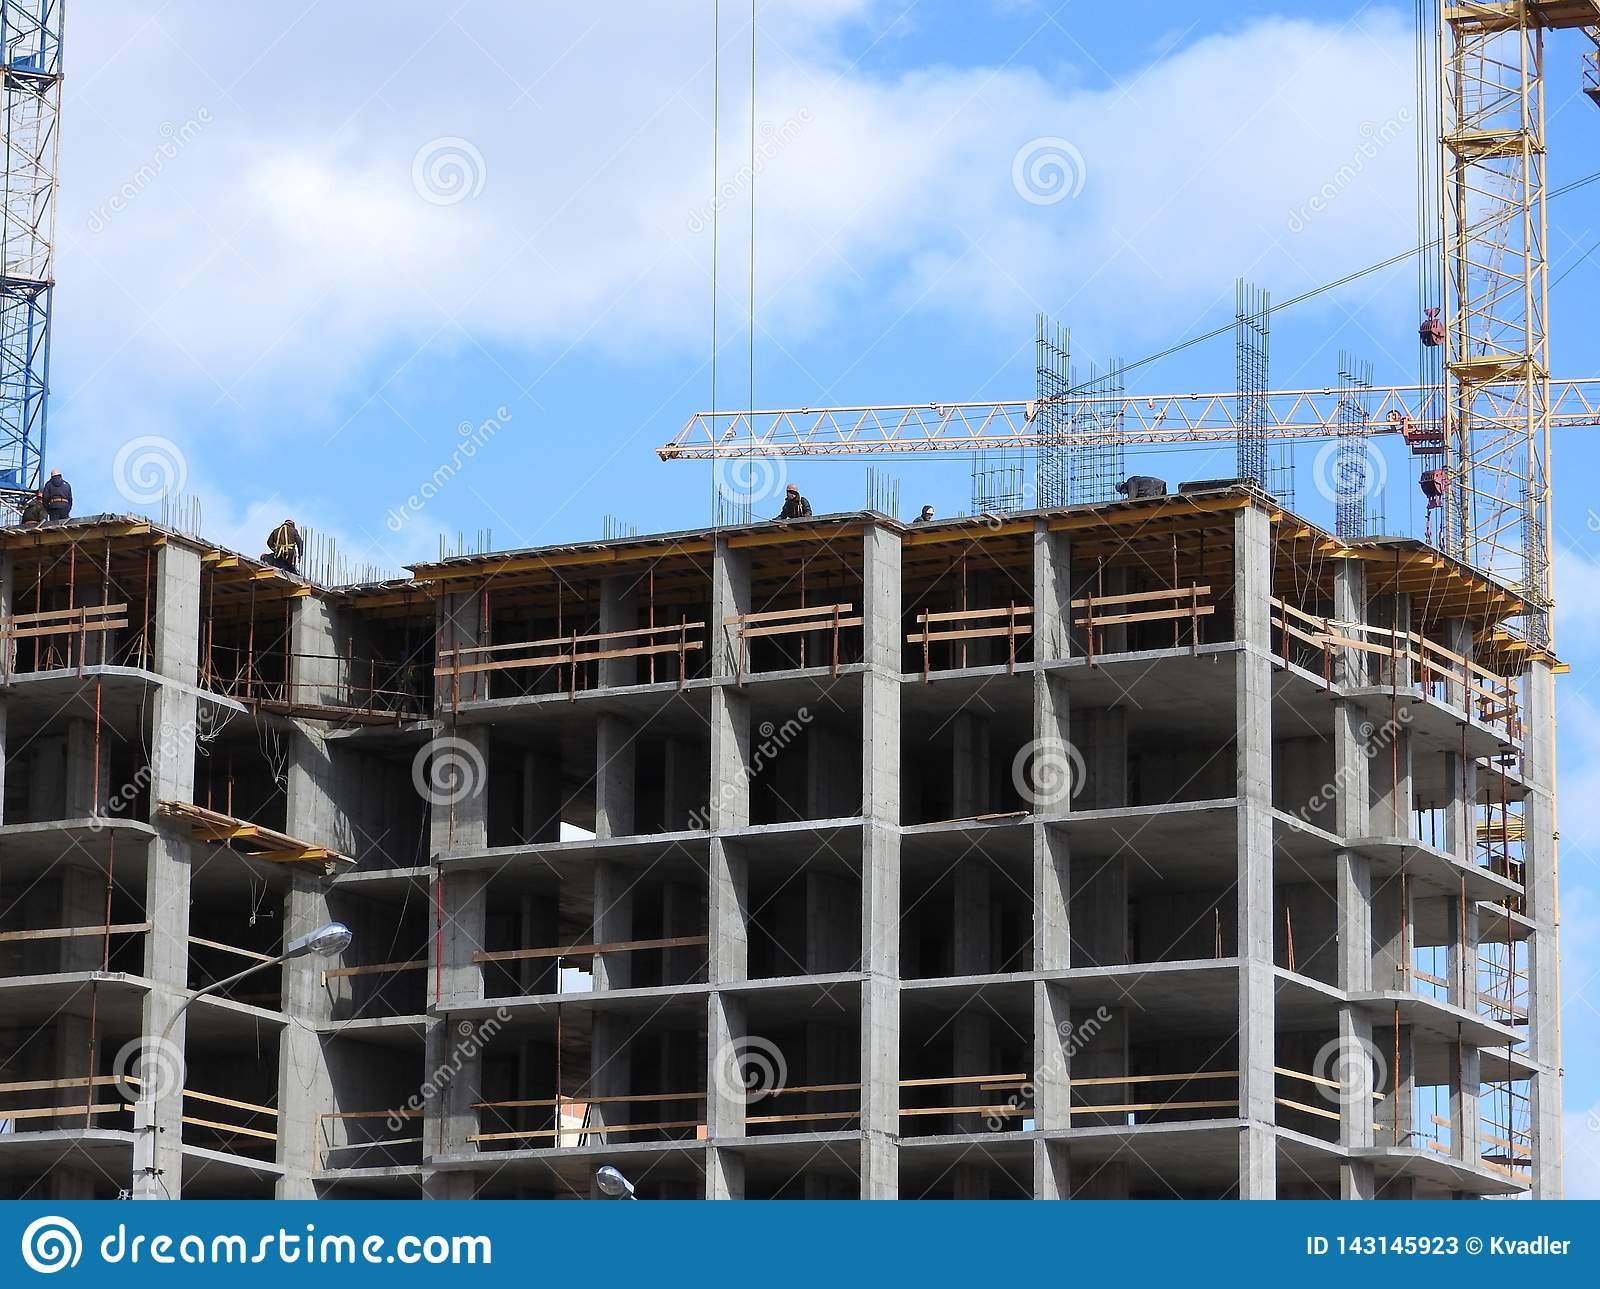 Aerial photograph of an unrecognized civil engineer without a face, watching the work of roof builders on the construction site.